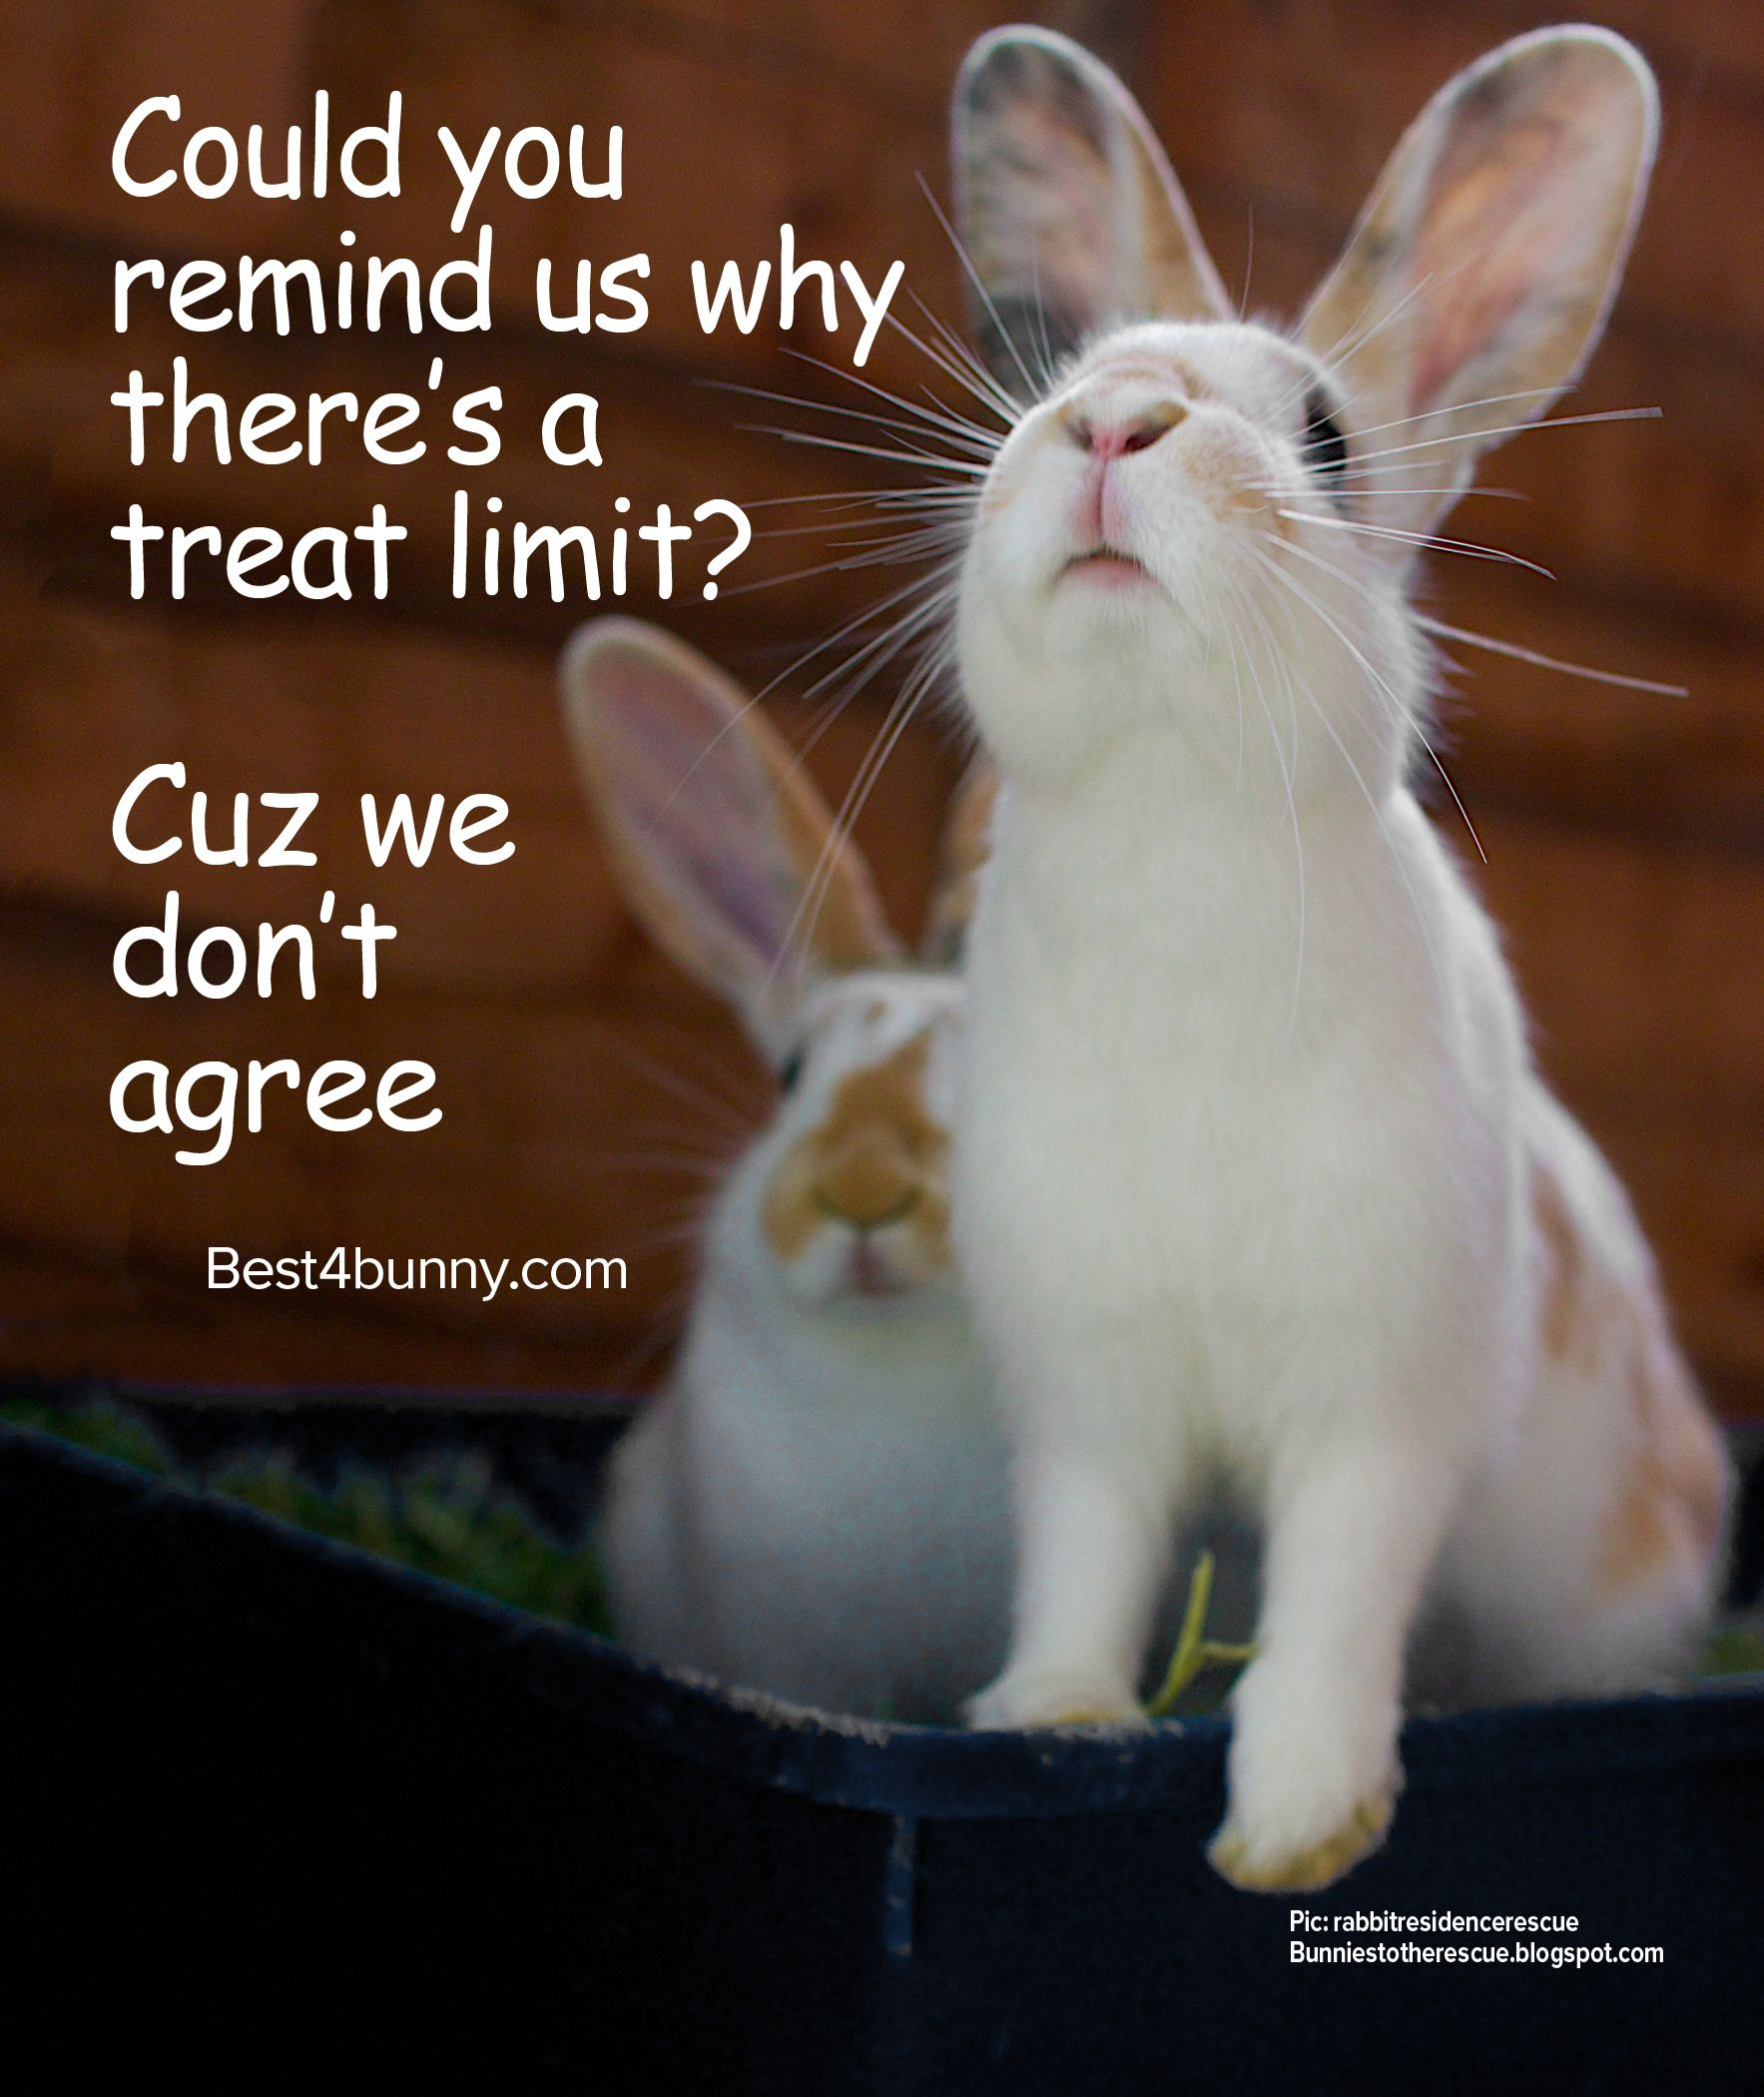 Bunnies sure do love their treats!